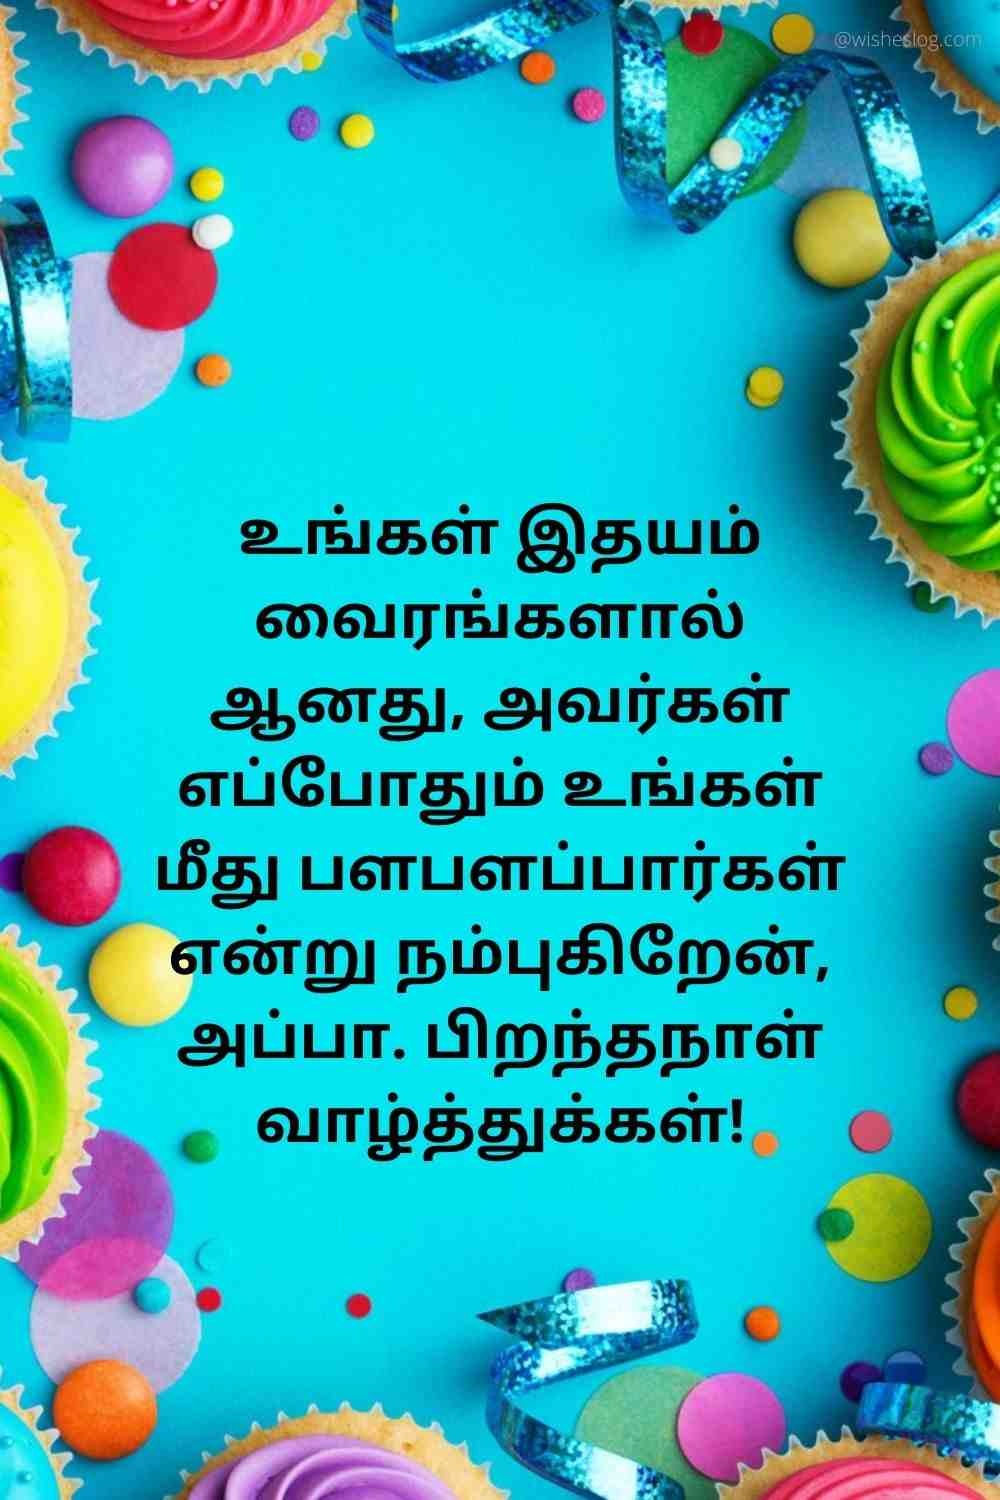 birthday wishes quotes in tamil for papa